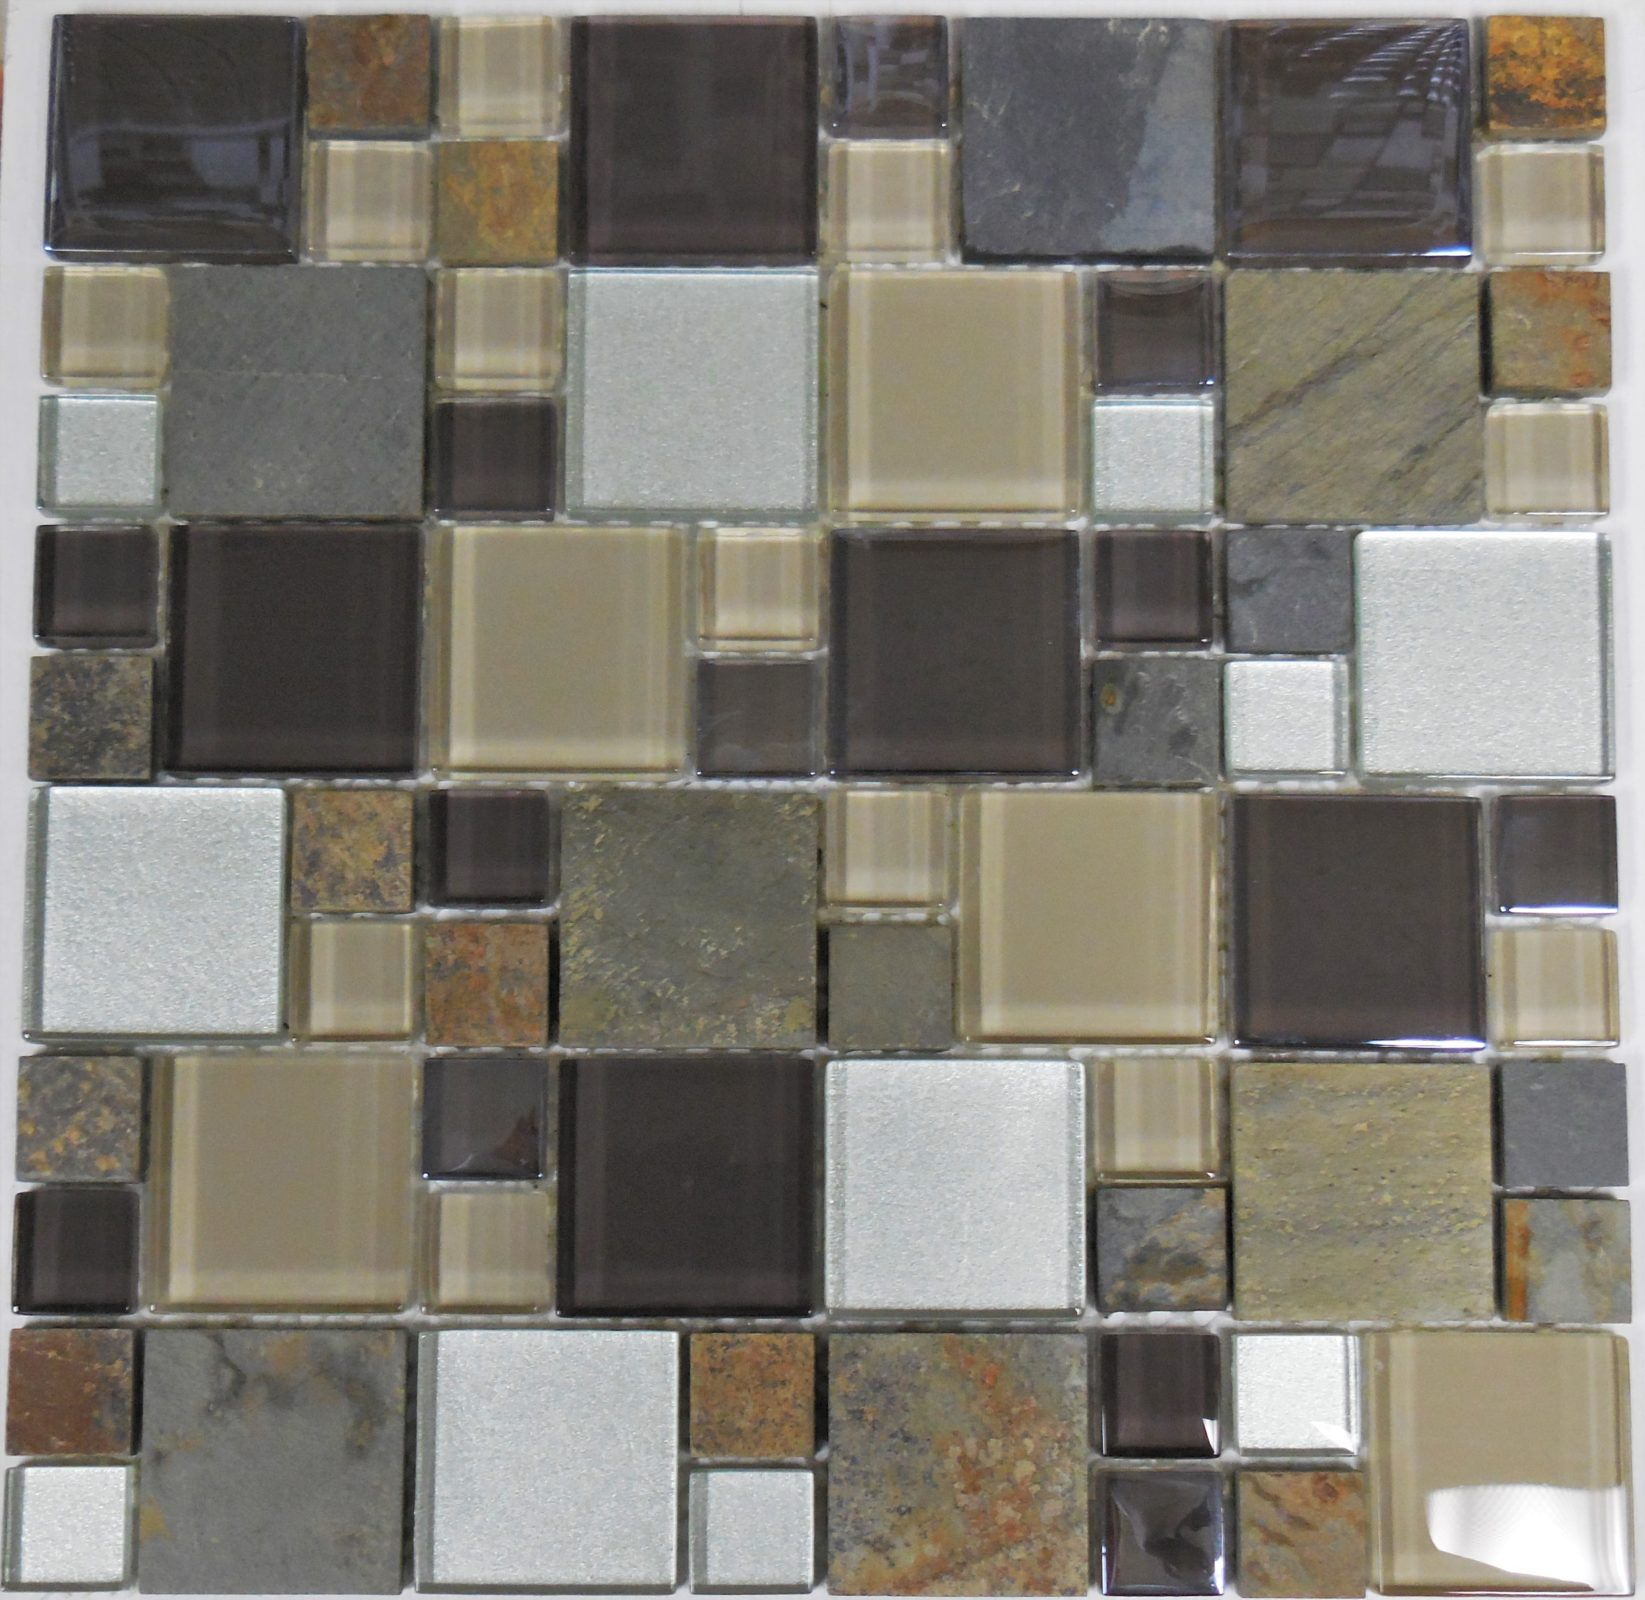 Al1032 Magnificent Modular Series Block Random Glass And Stone